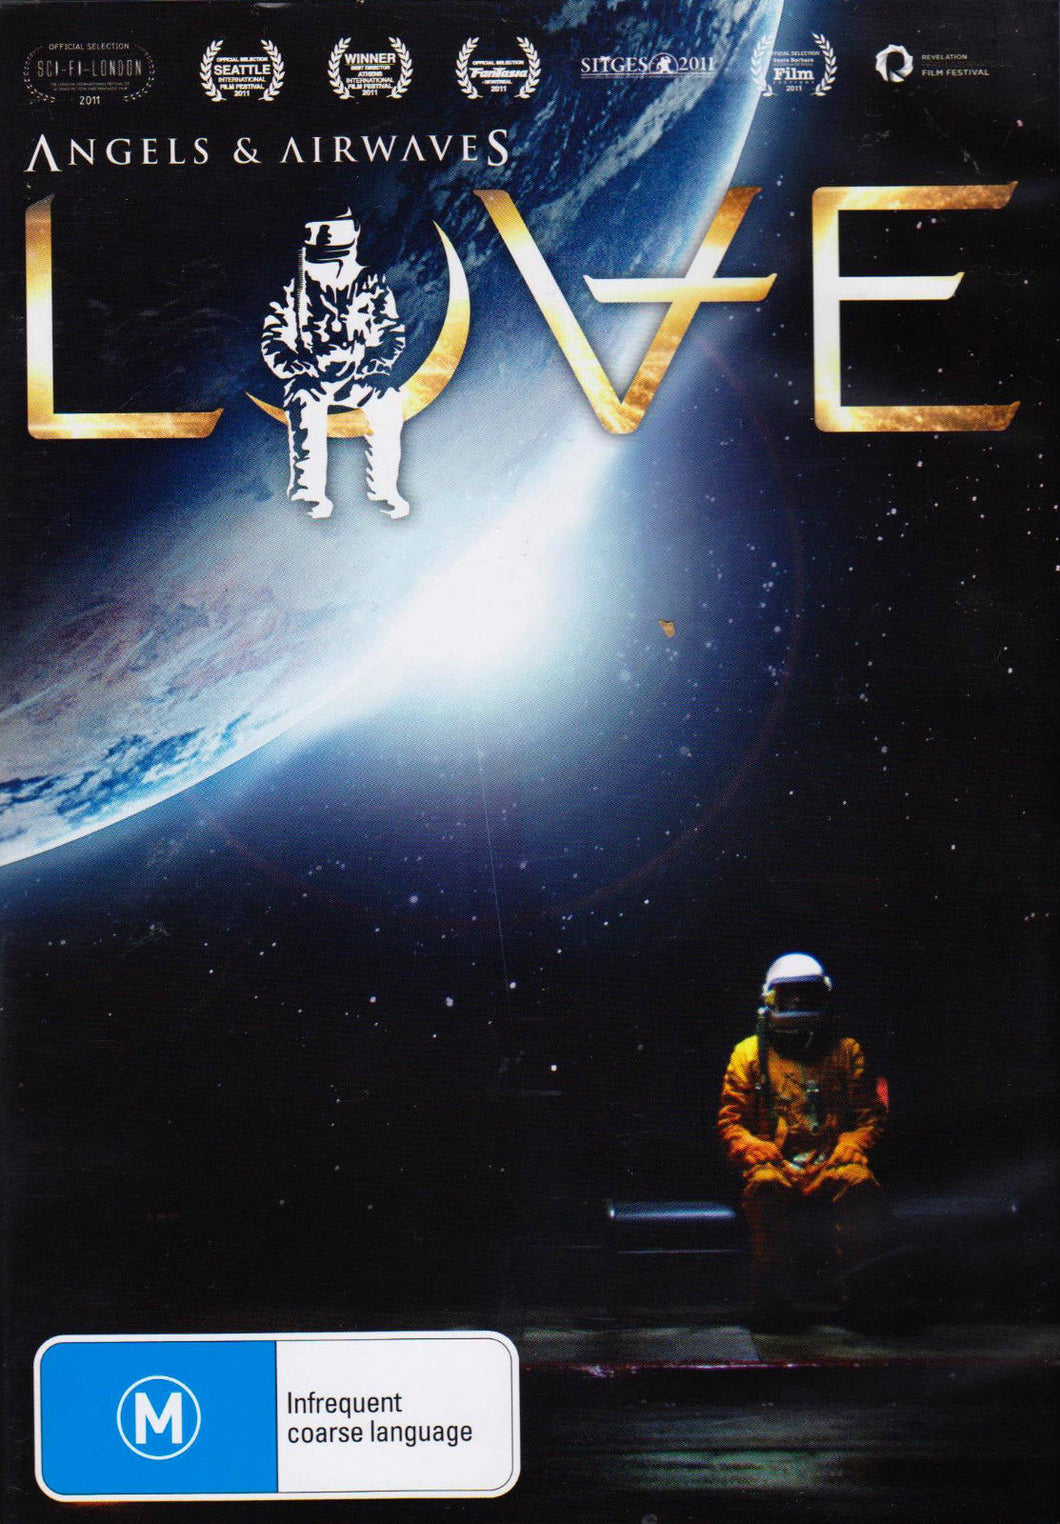 LOVE (2011) Angels and Airwaves